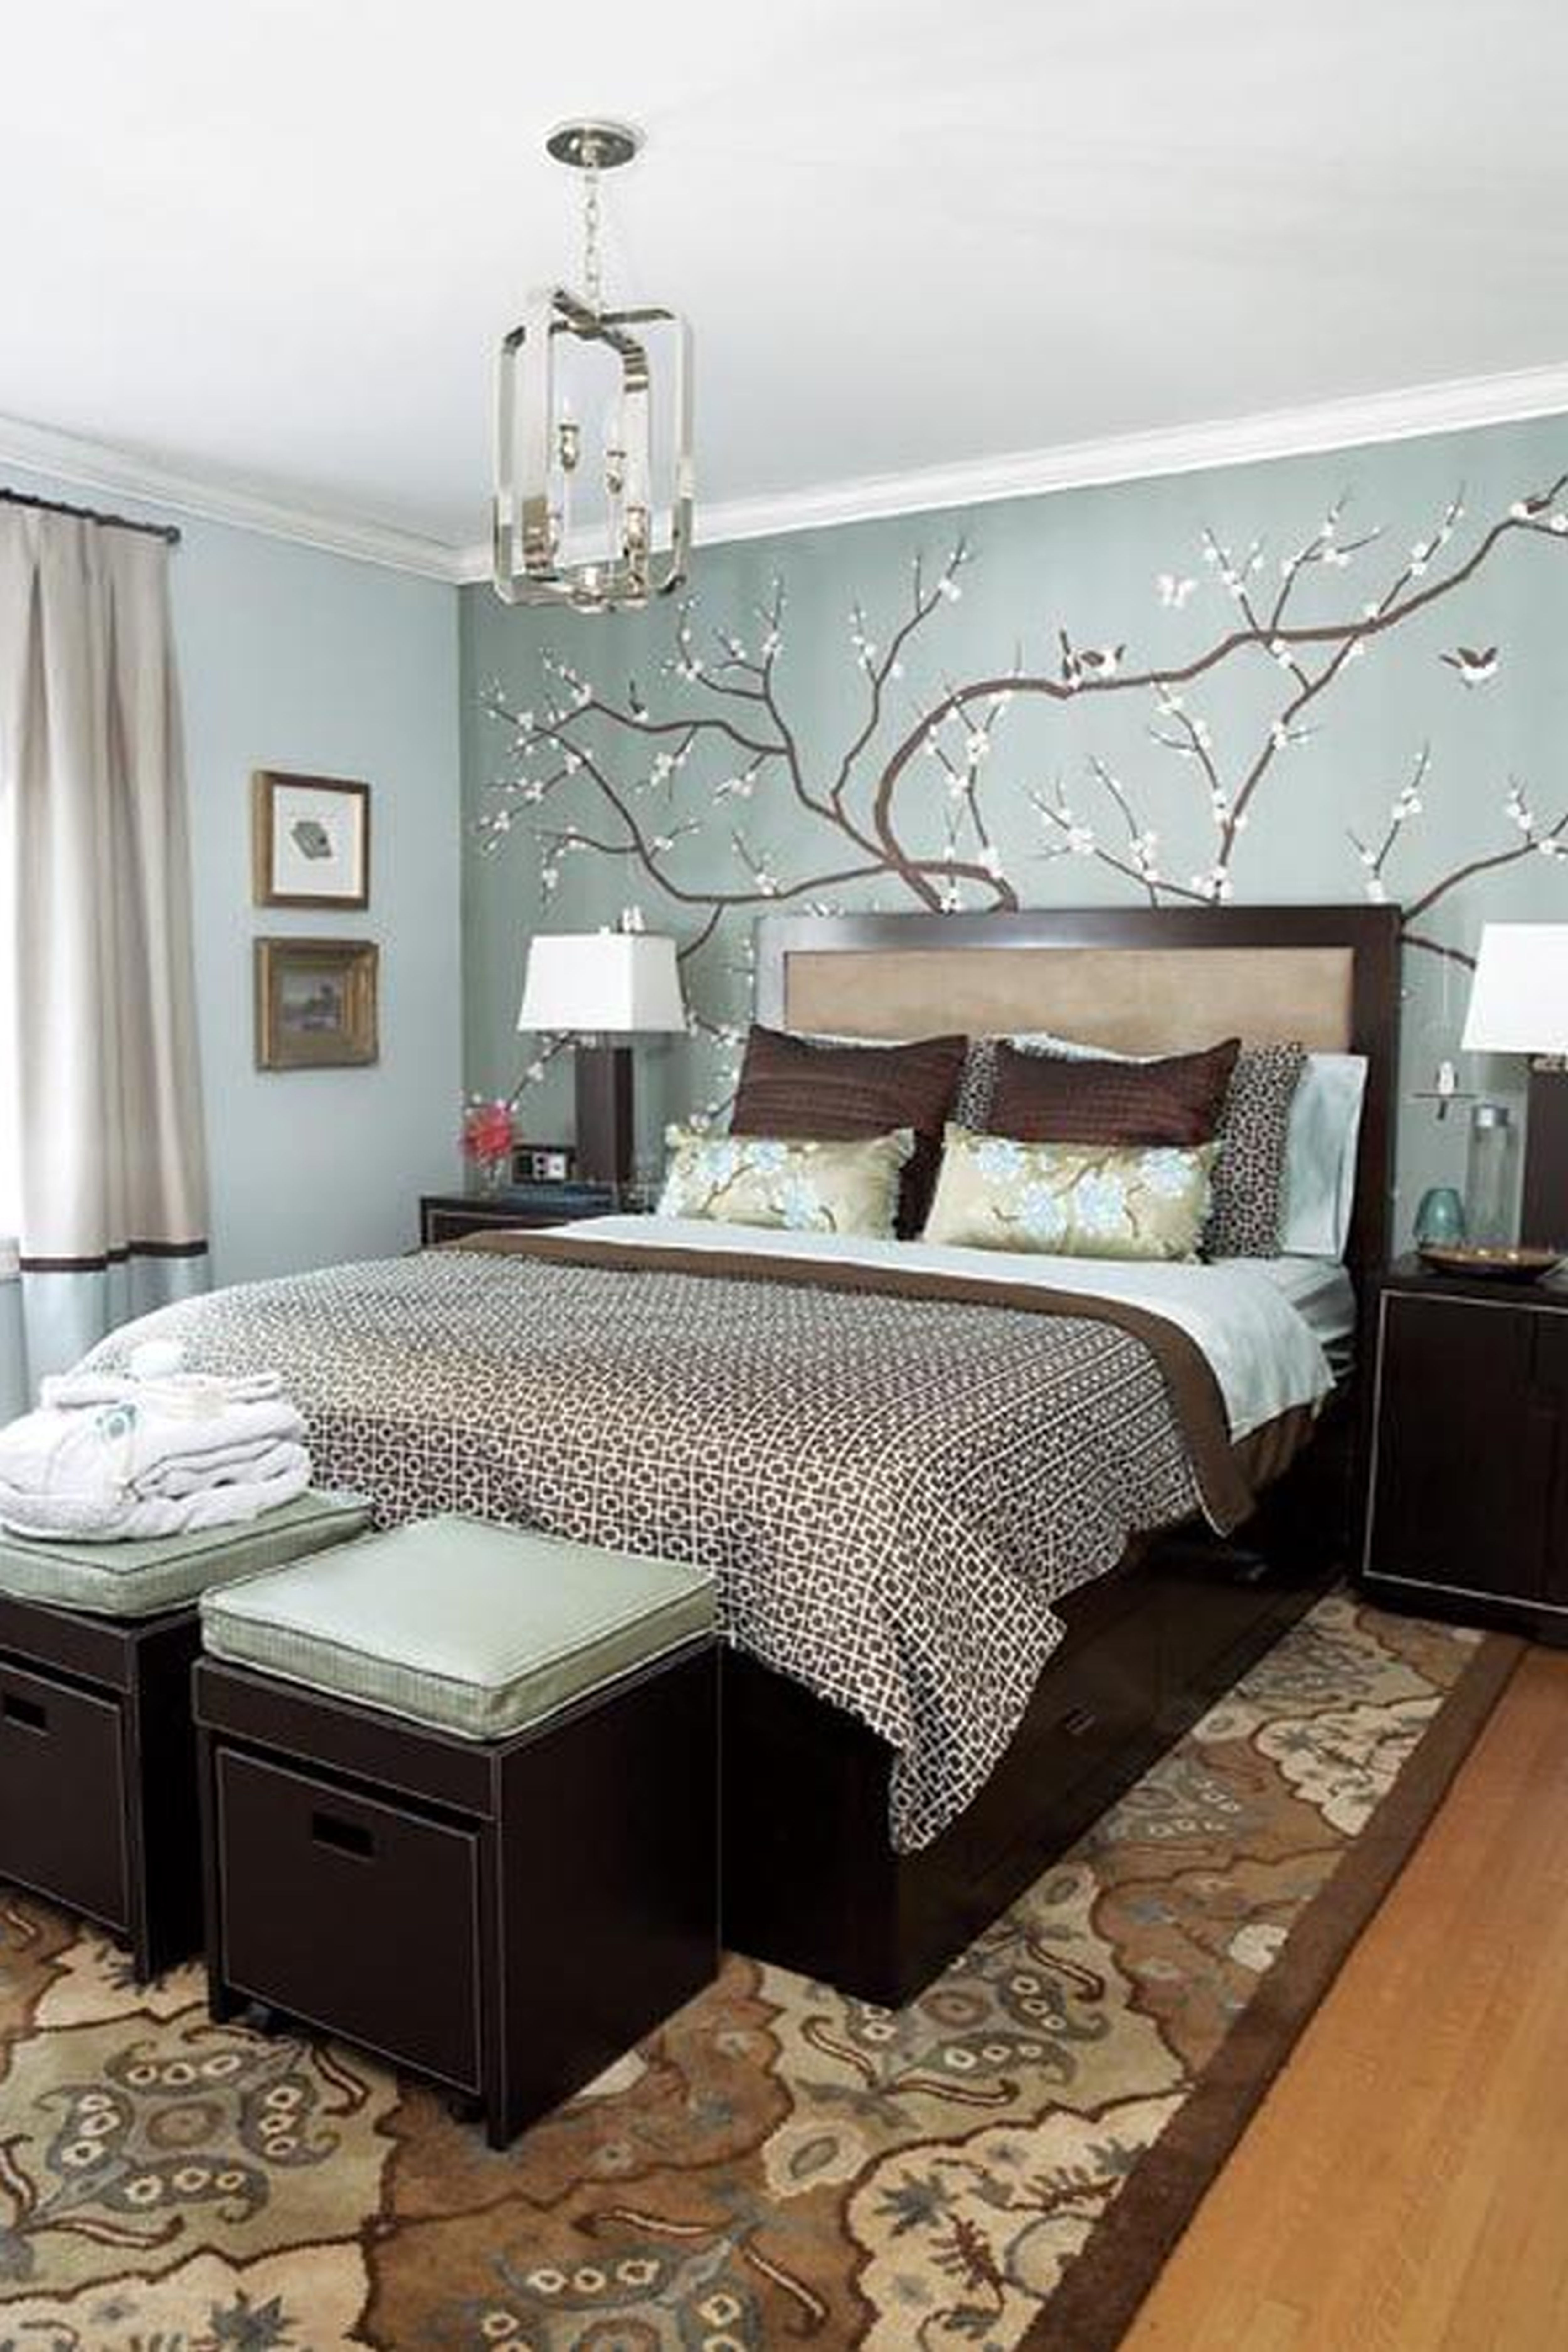 Decorate Bedroom Light Blue Walls | Home Decor